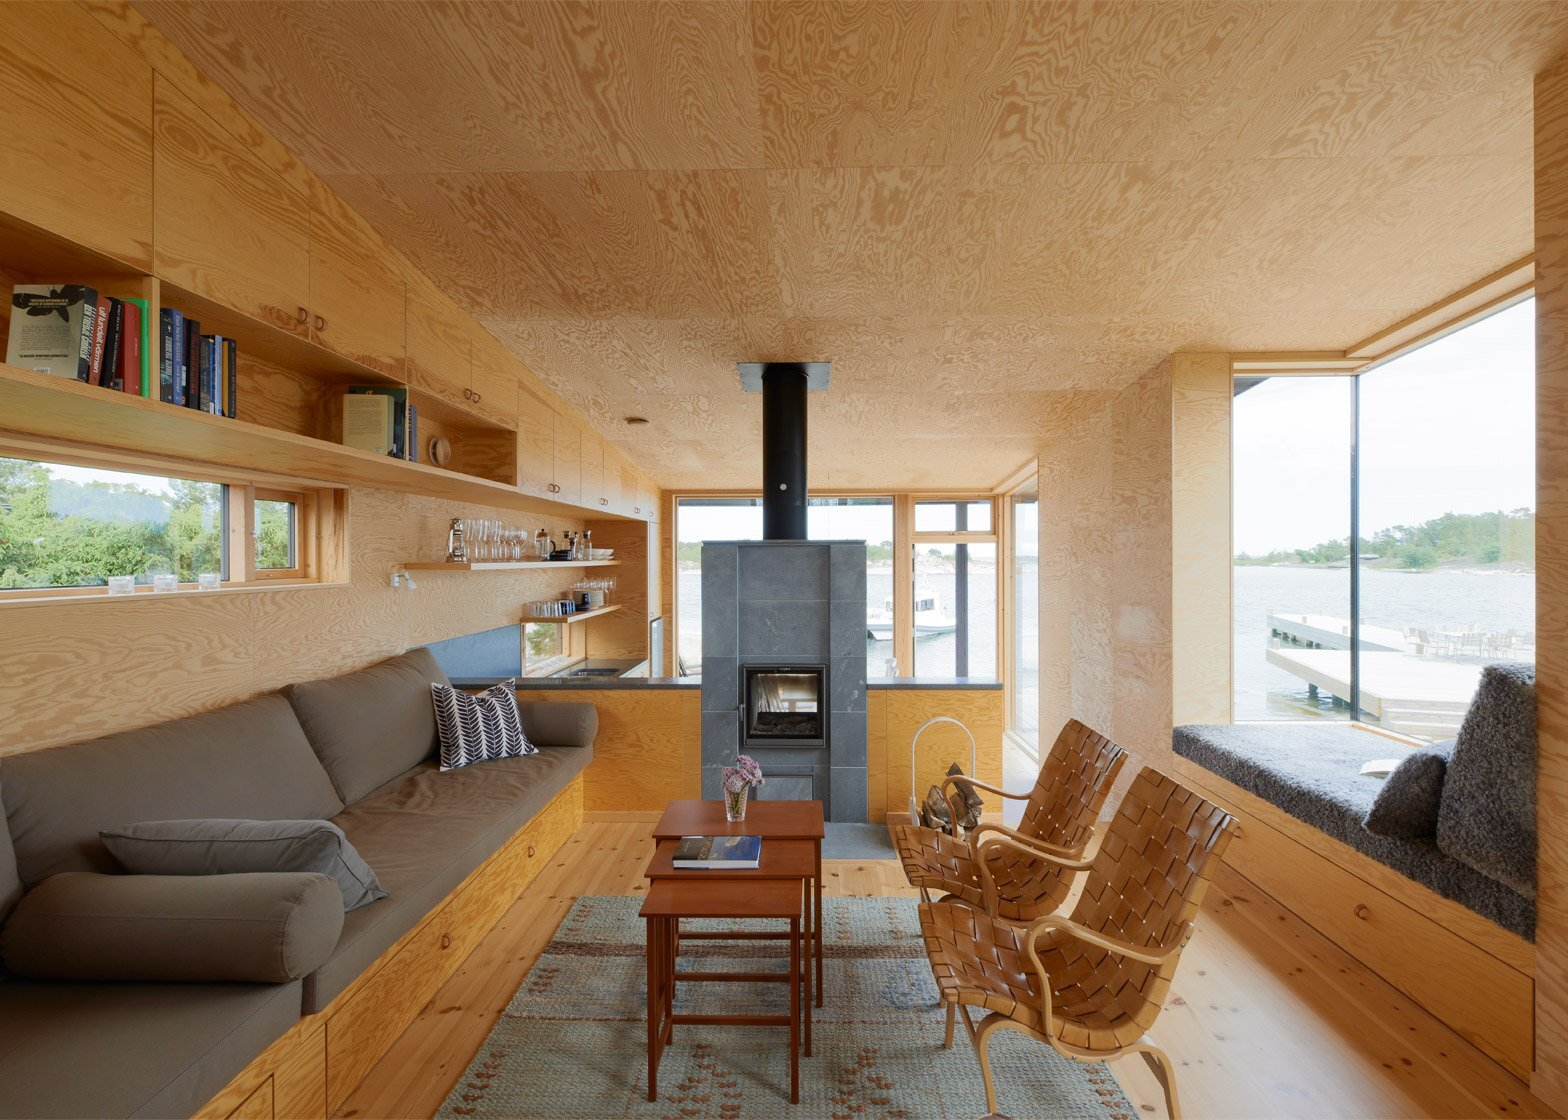 Small Cabins - Margen Wigow Arkitektkontor - Stockholm Archipelago - Living Room - Humble Homes